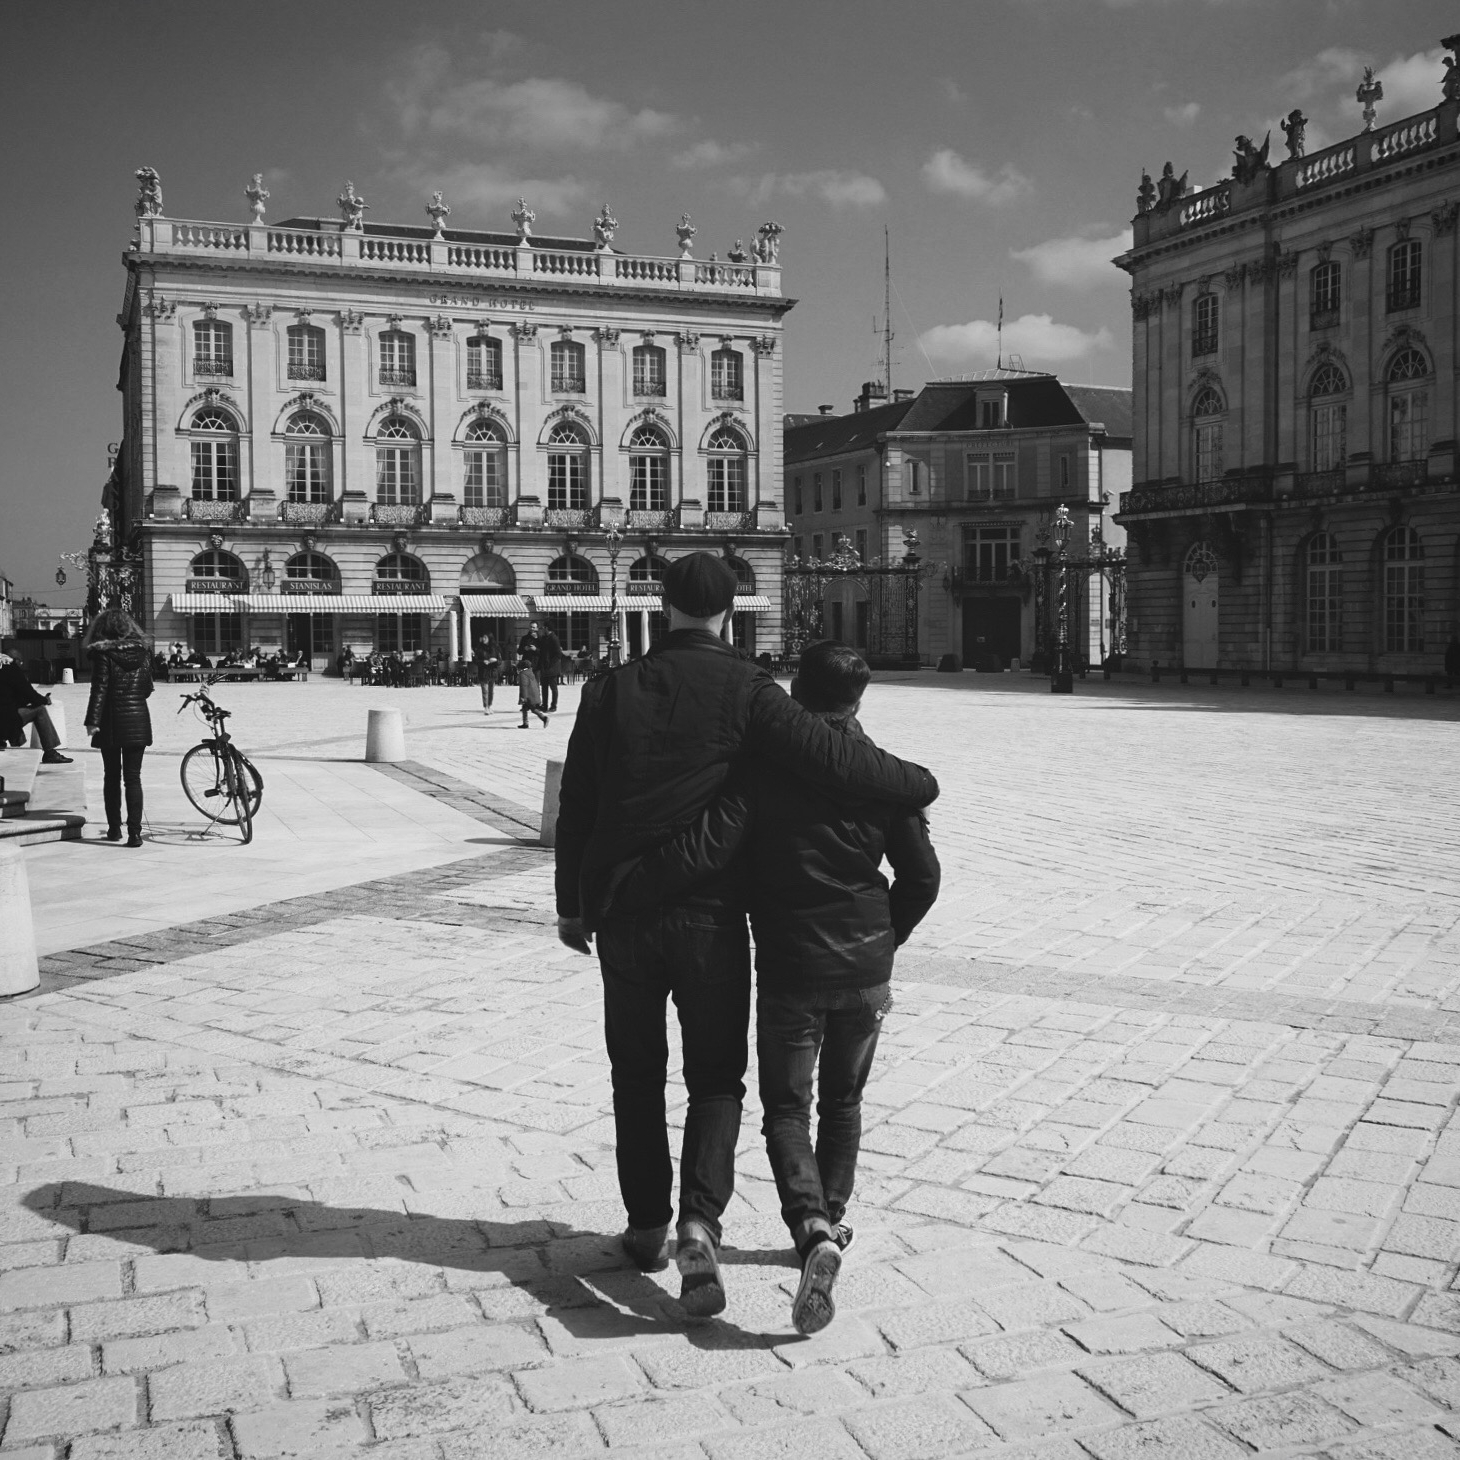 Strolling through the town square of Nancy, France, March 2018.